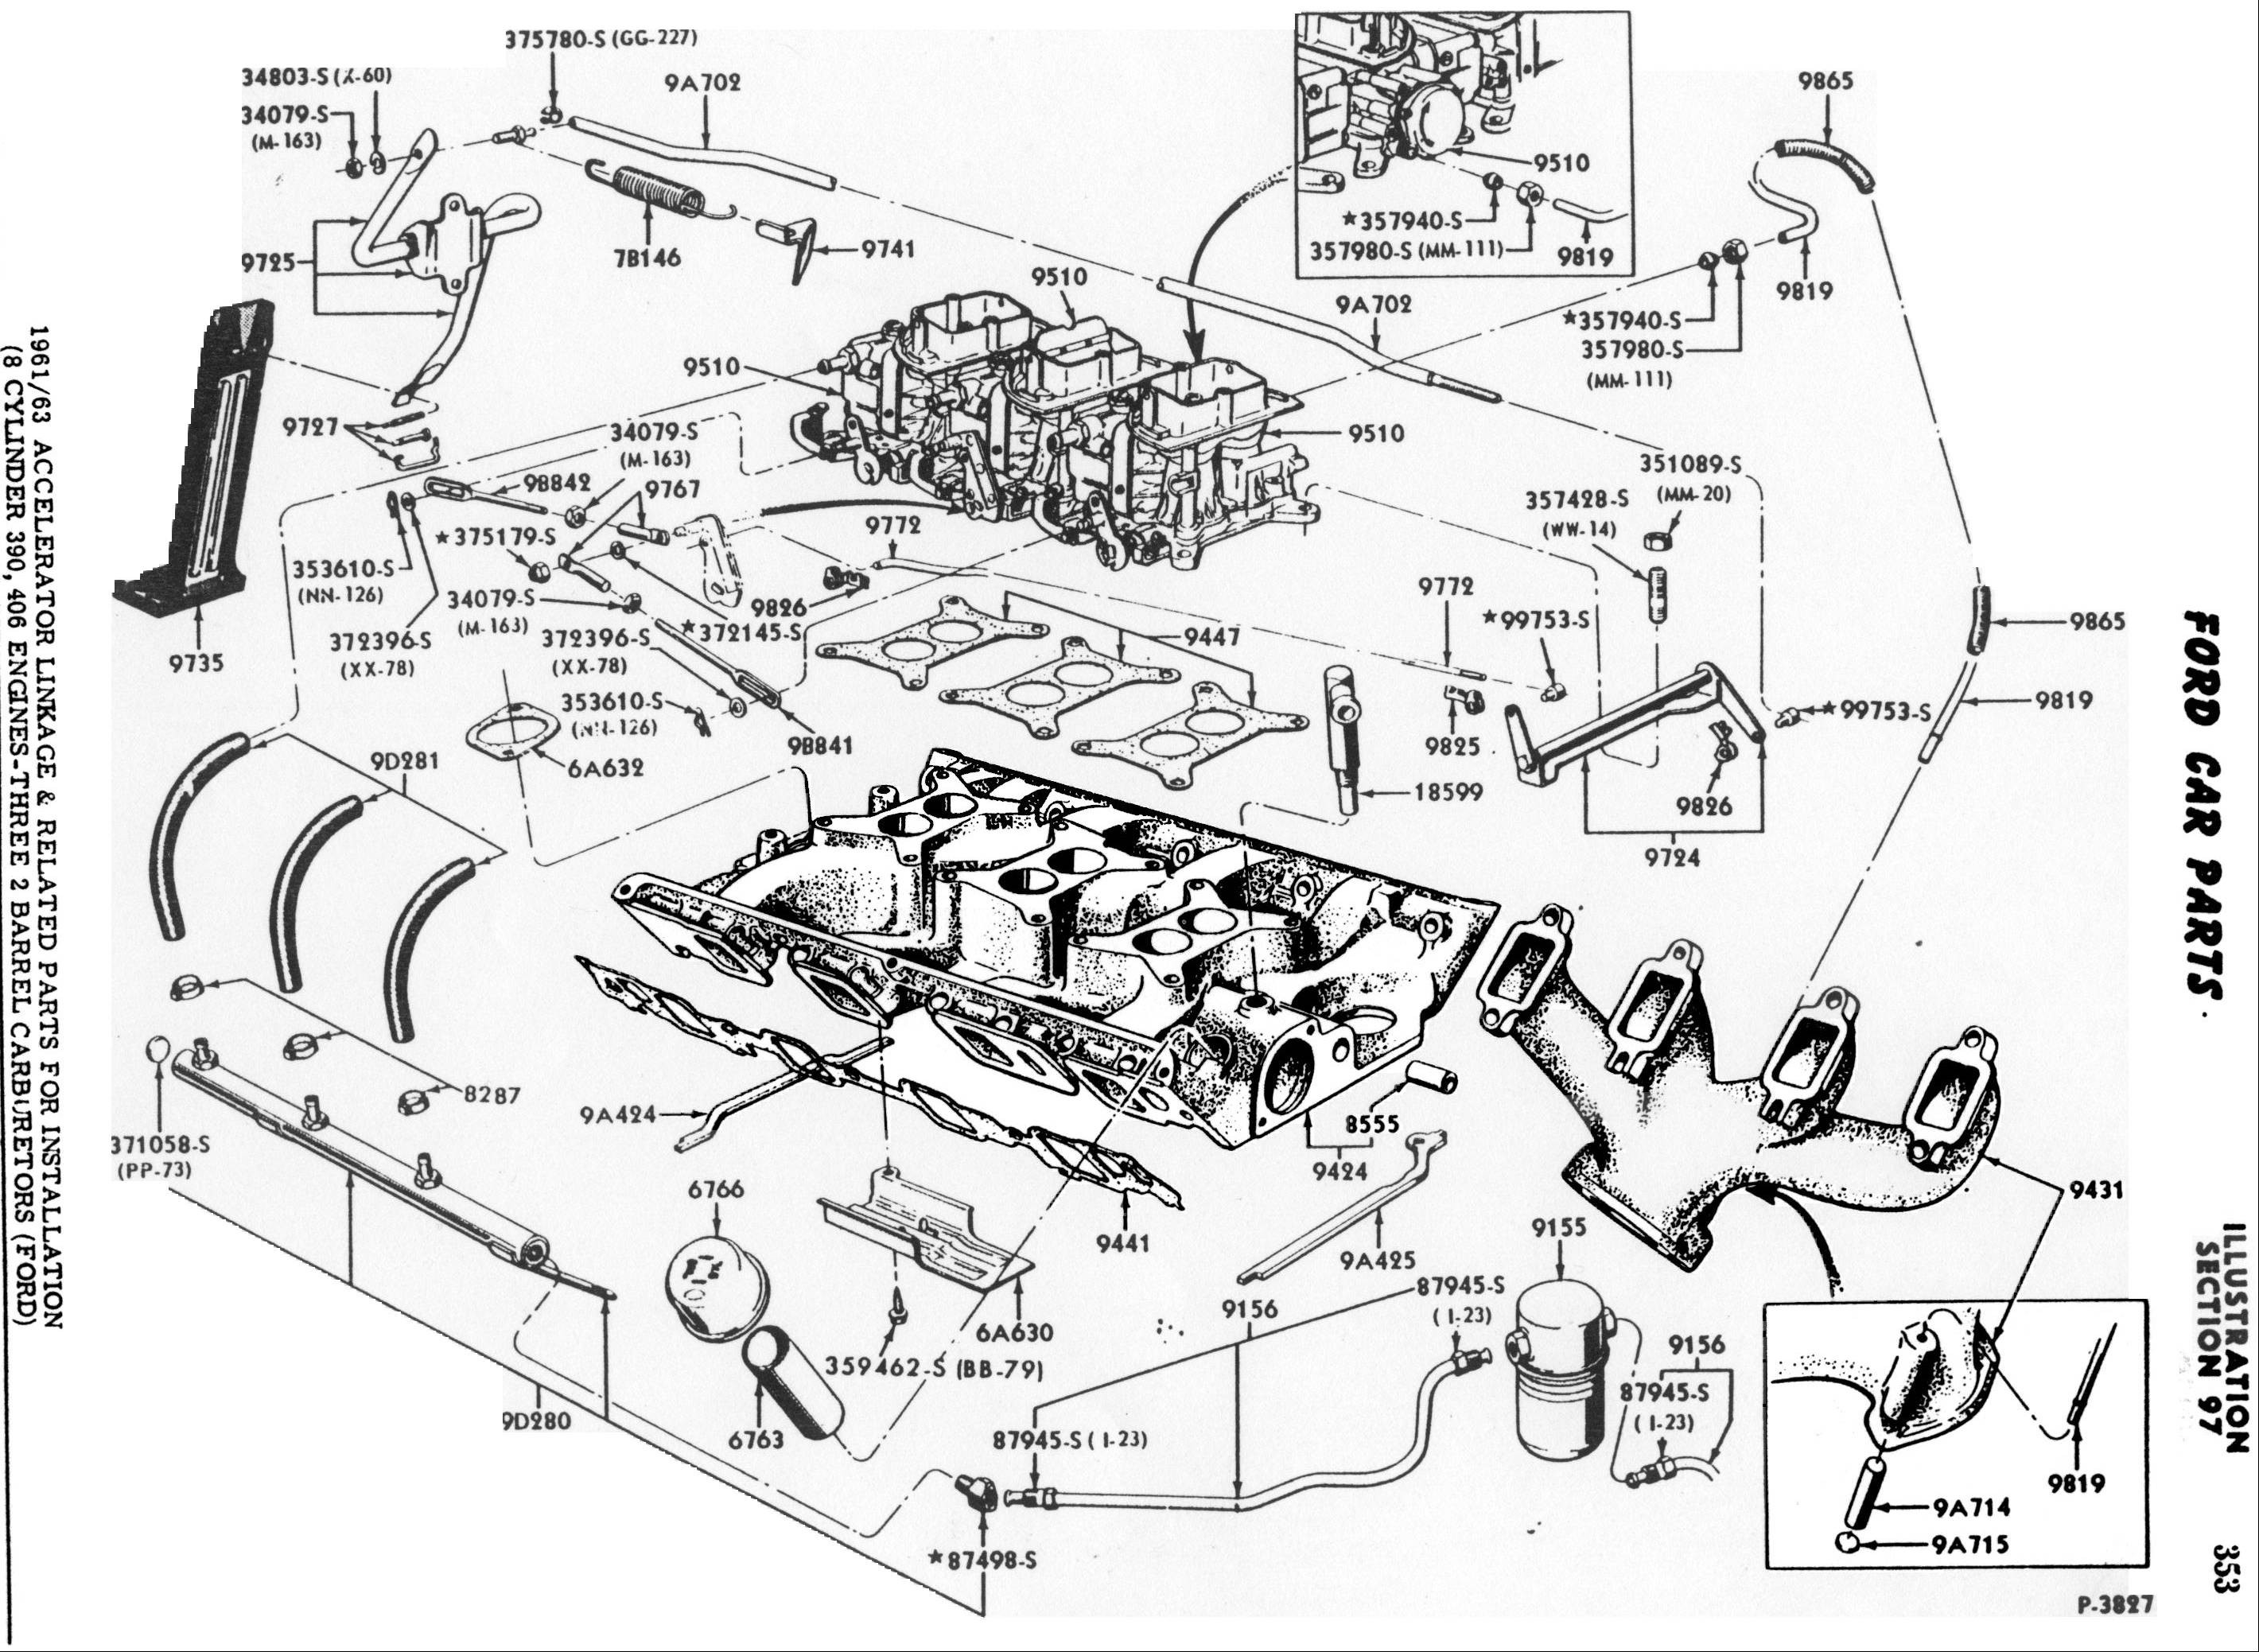 Car engine diagram with labeled 460 ford engine diagram wiring info of car engine diagram